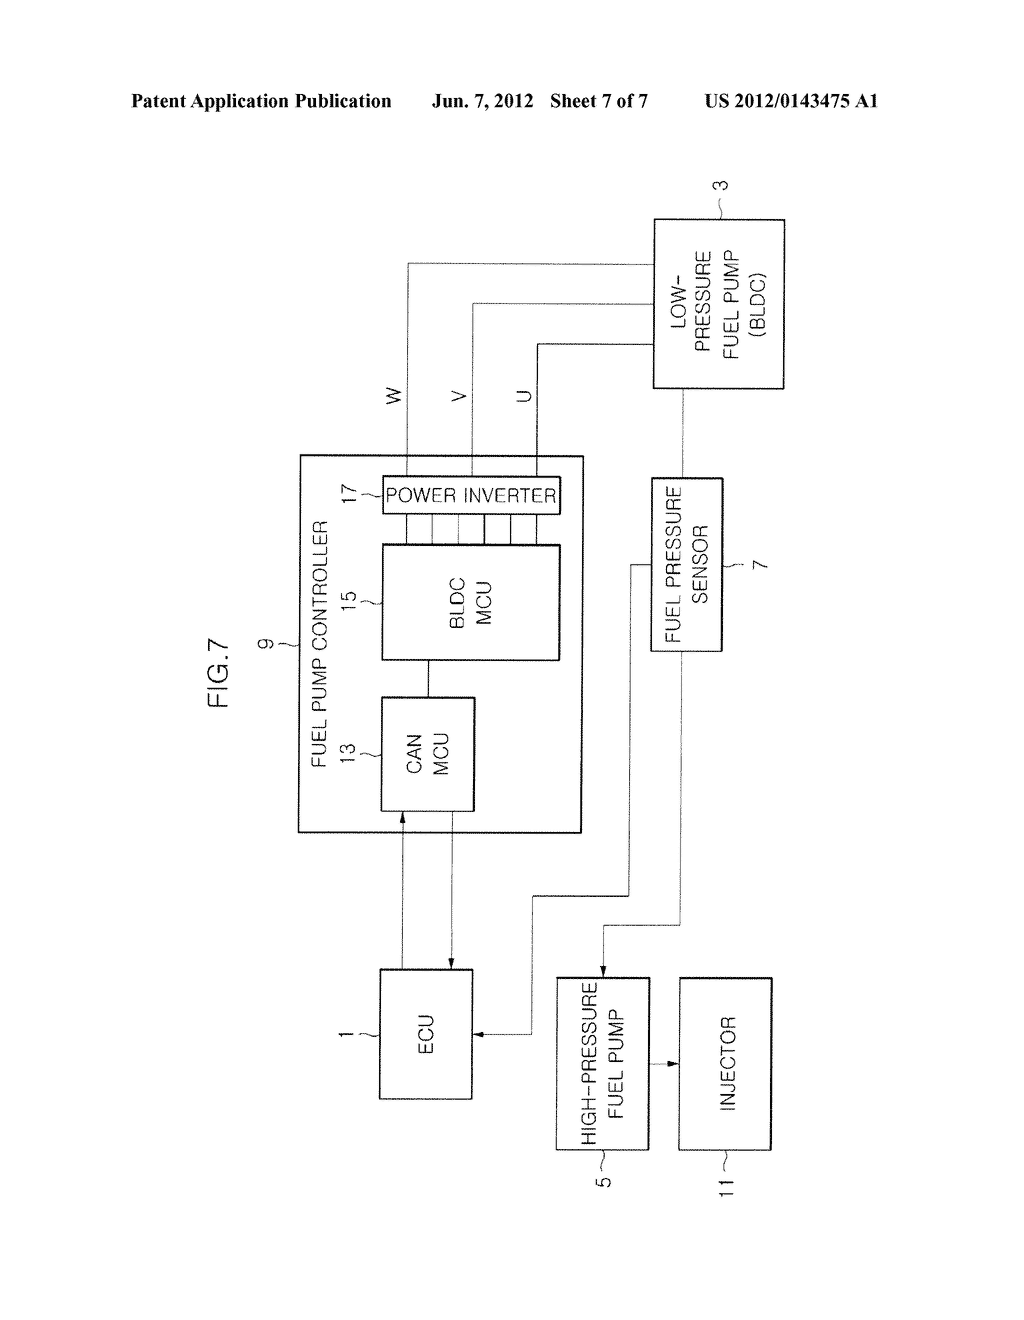 hight resolution of fuel supply system for gdi engine and control method thereof diagram schematic and image 08